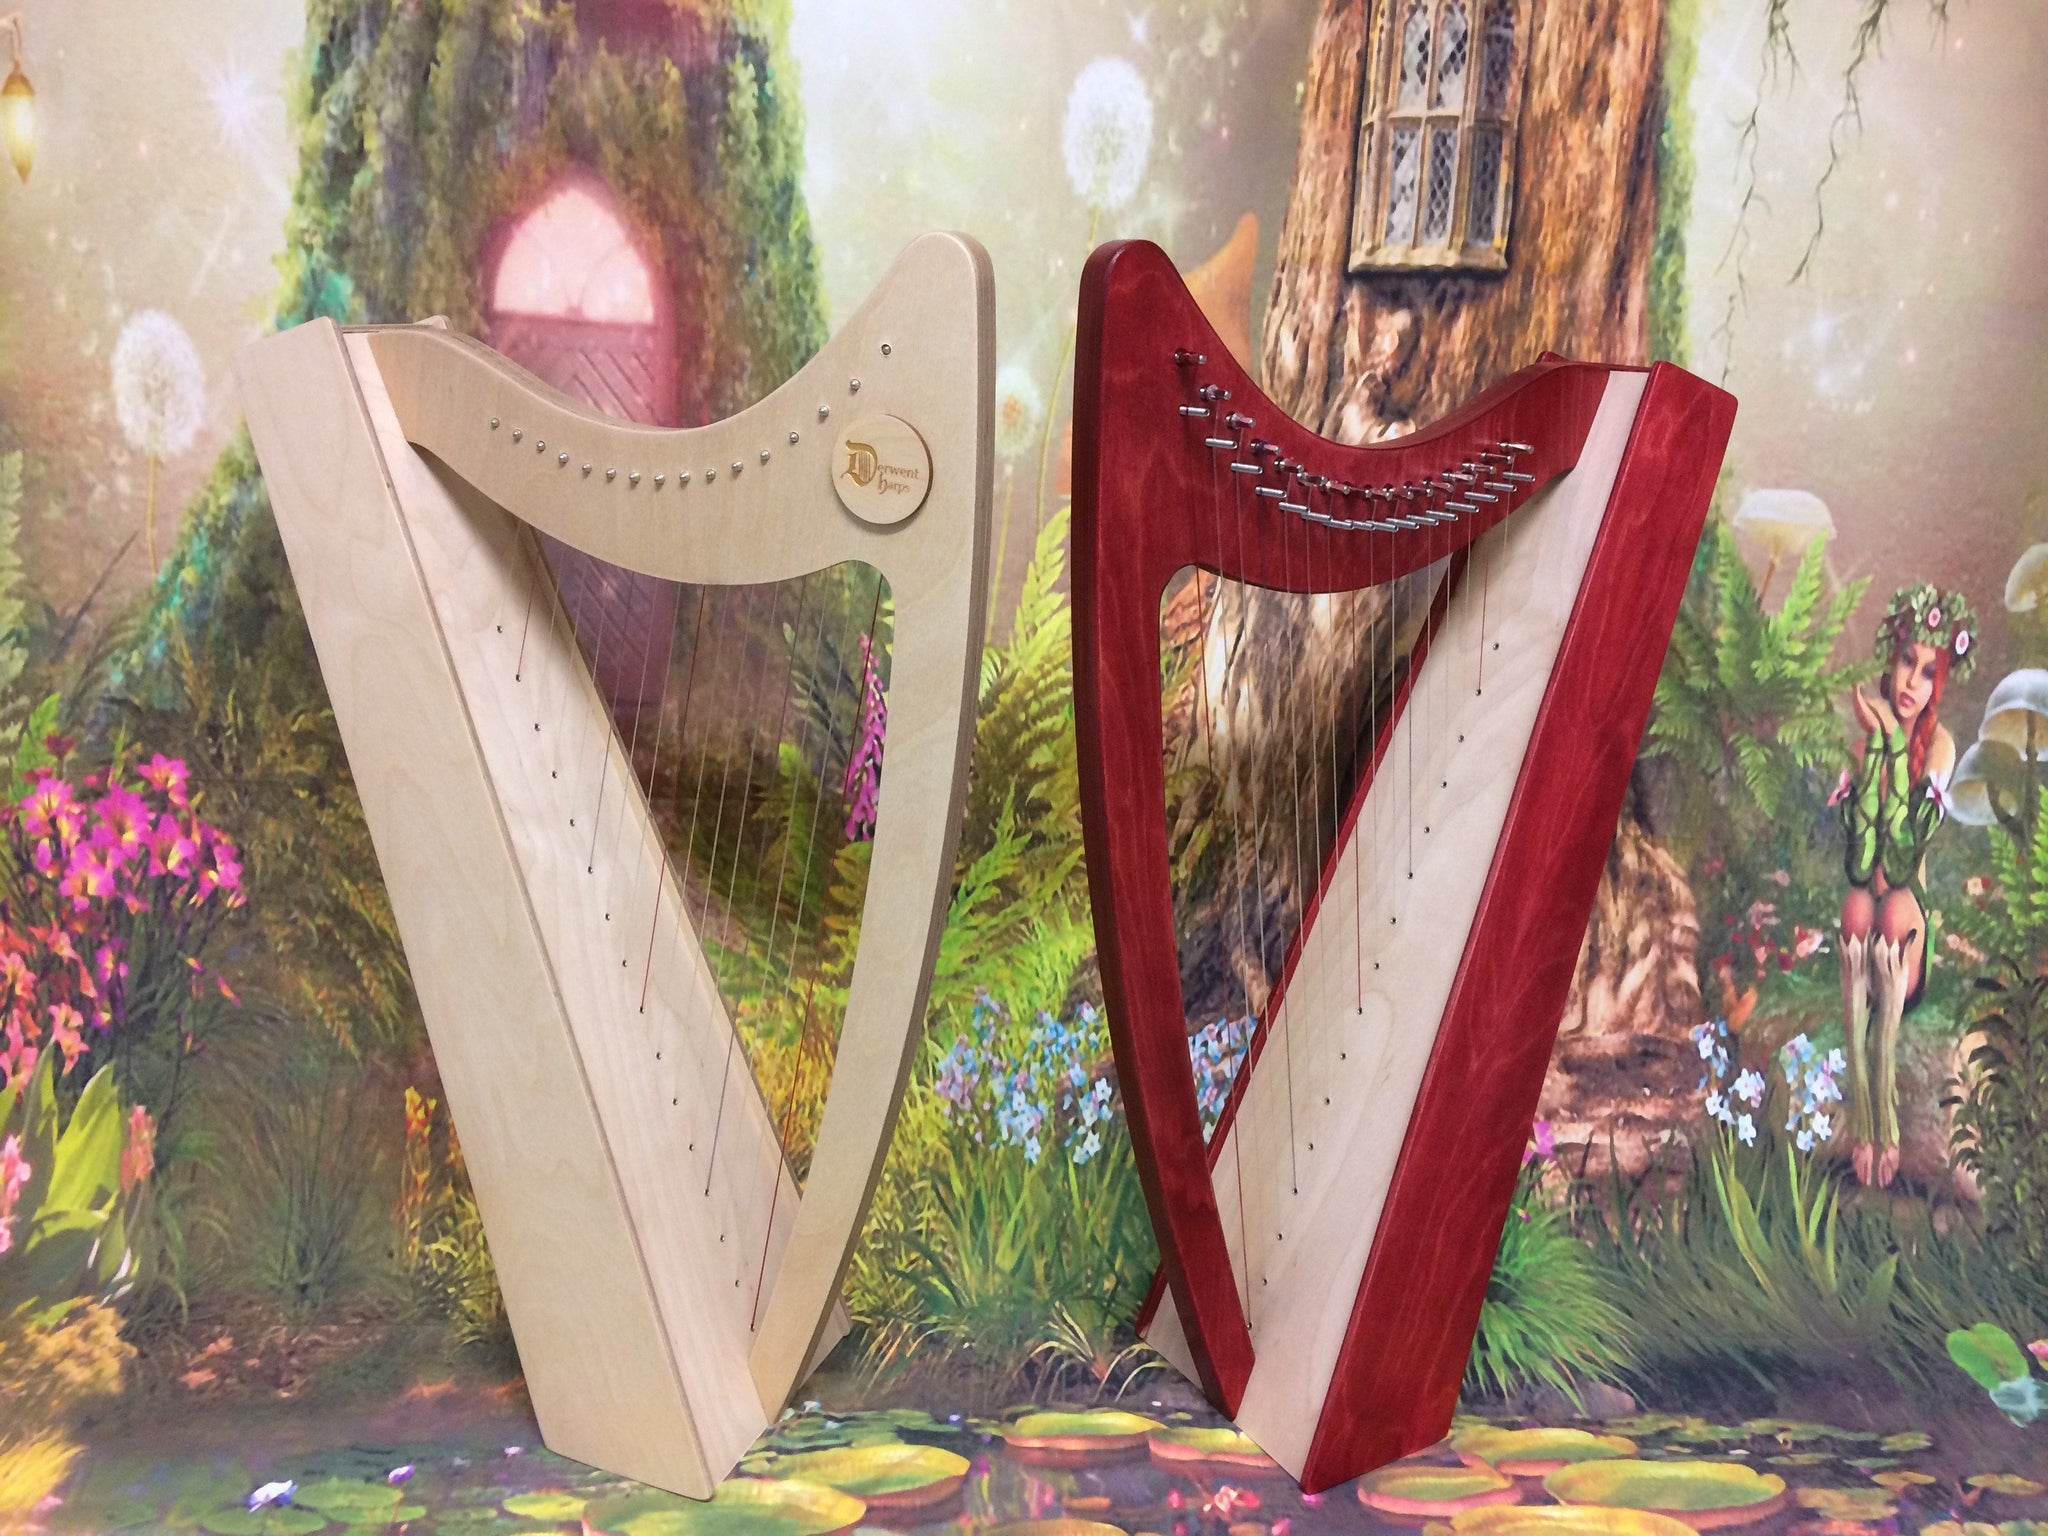 Discovery 16 - Discover the Harp at Home, includes harp, introductory book, video and tuning key